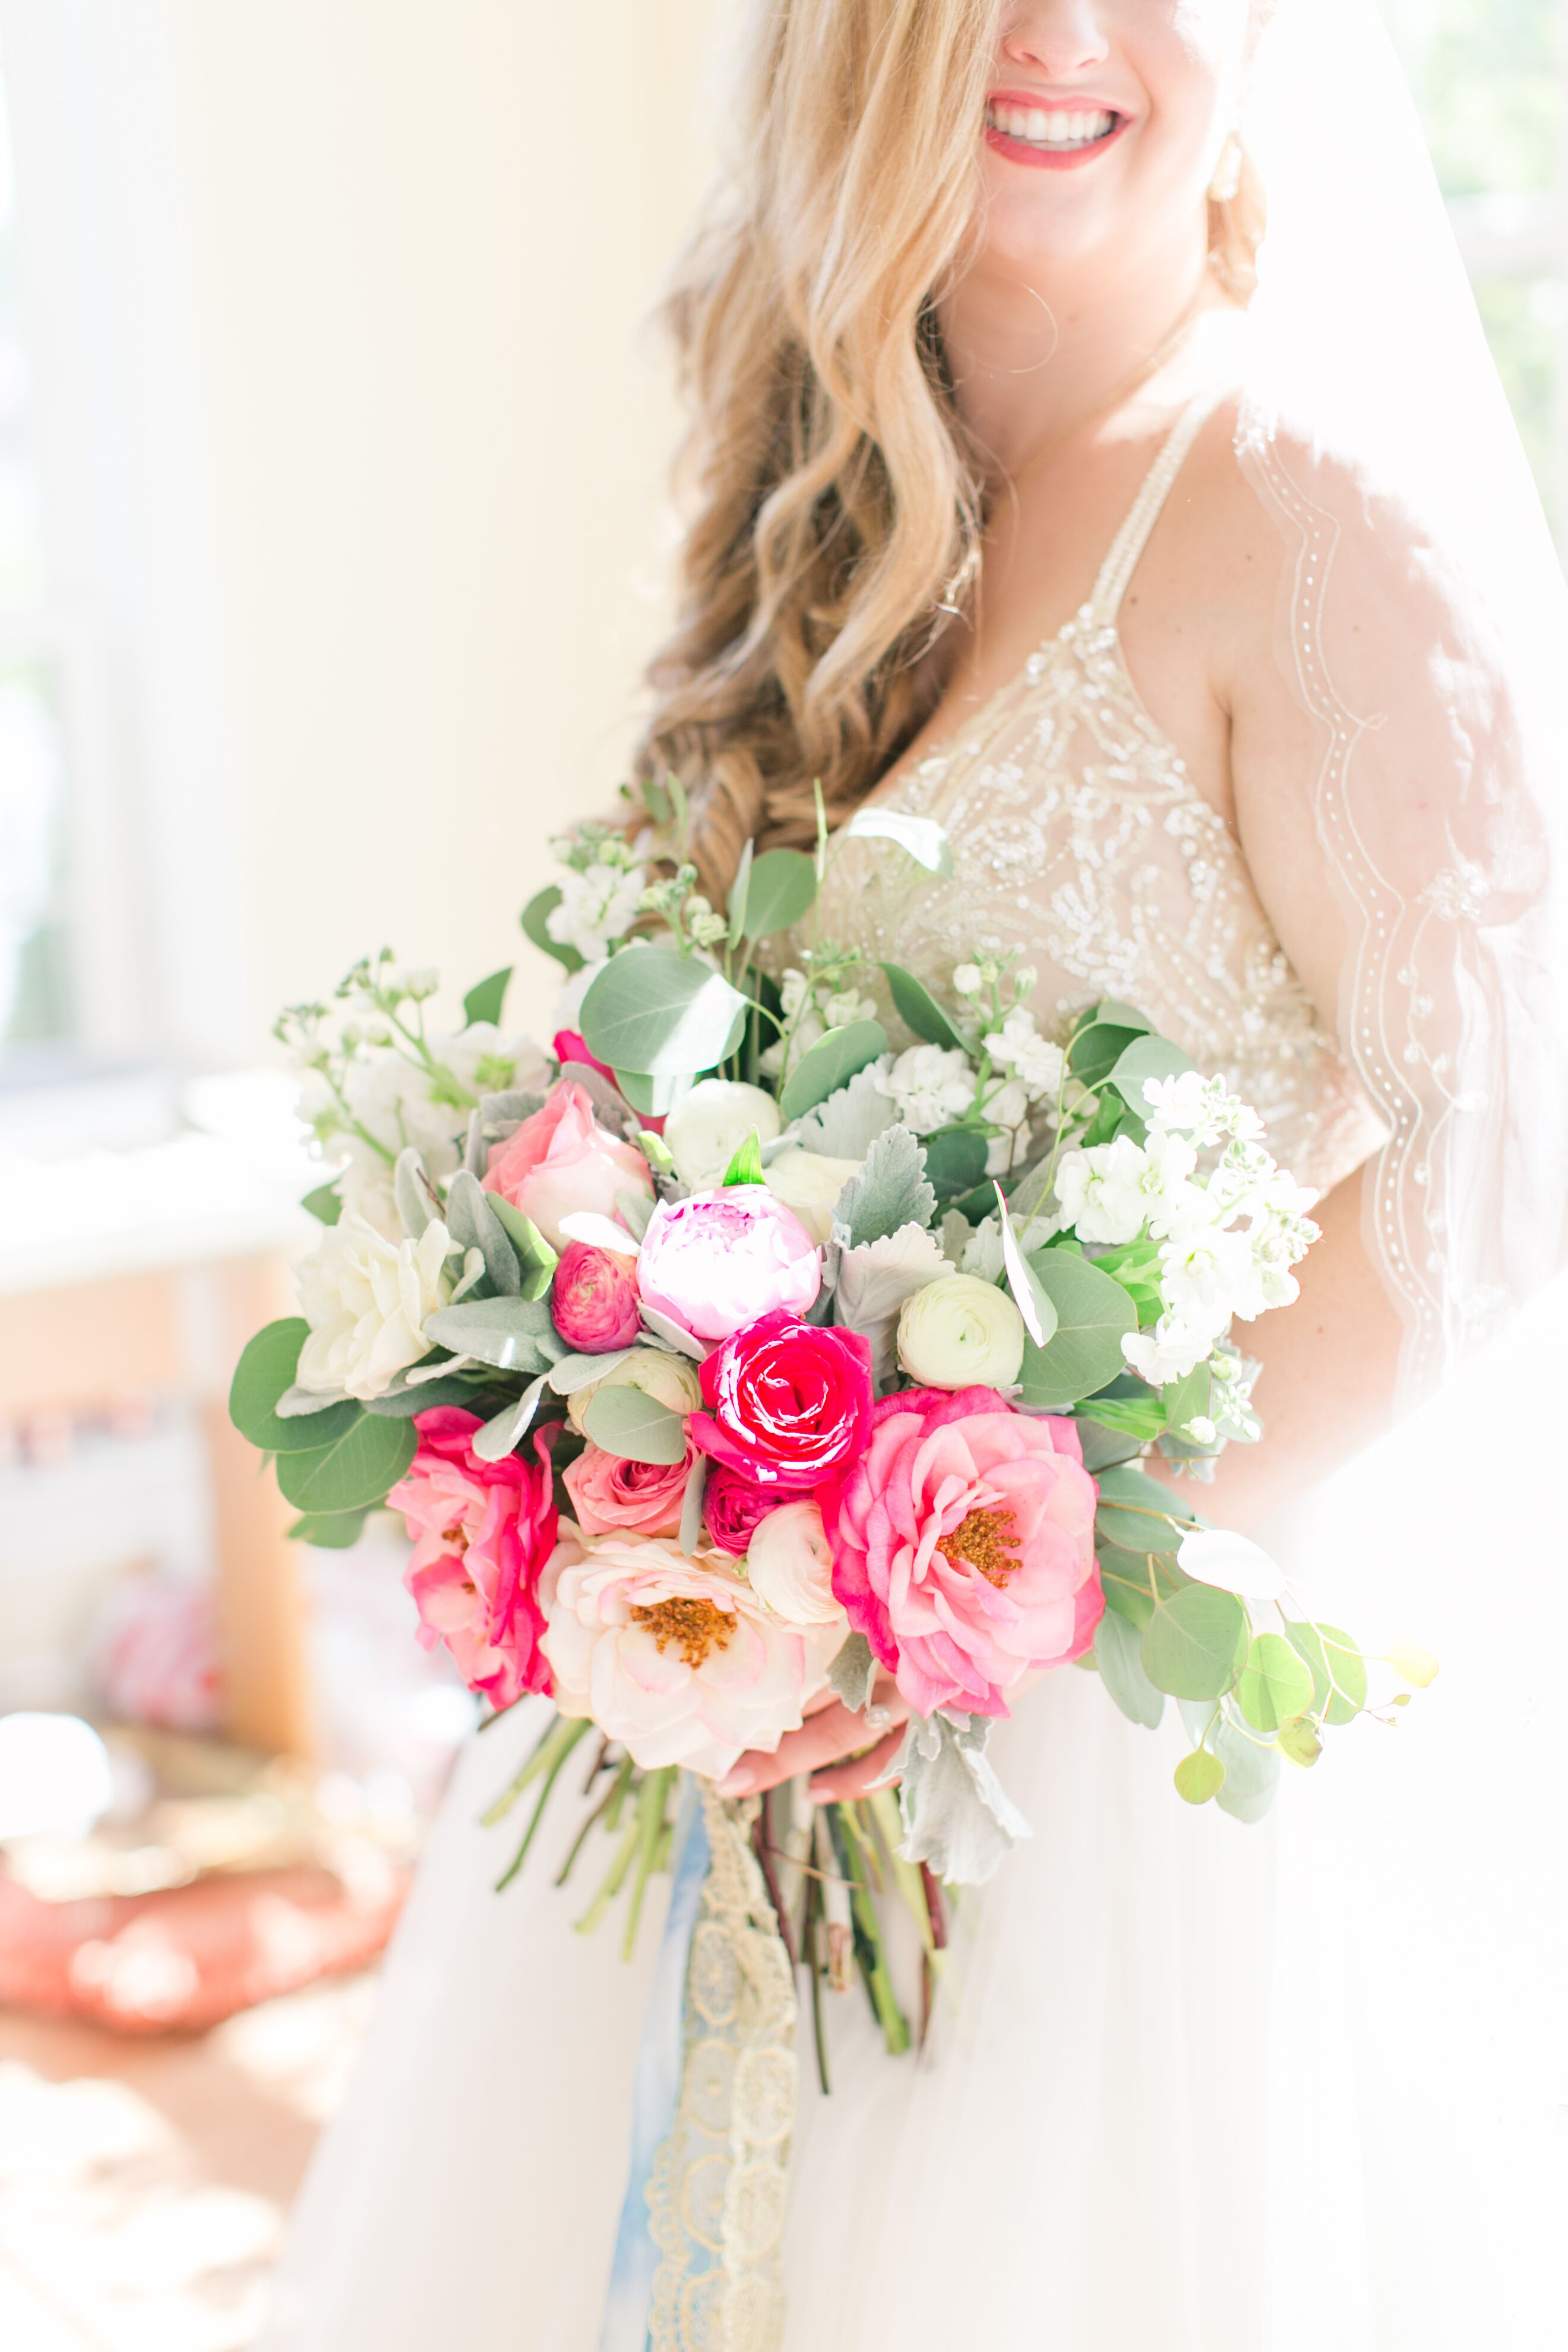 Glamorous Bouquet With Pink And White Garden Roses Peonies And Ranunculus